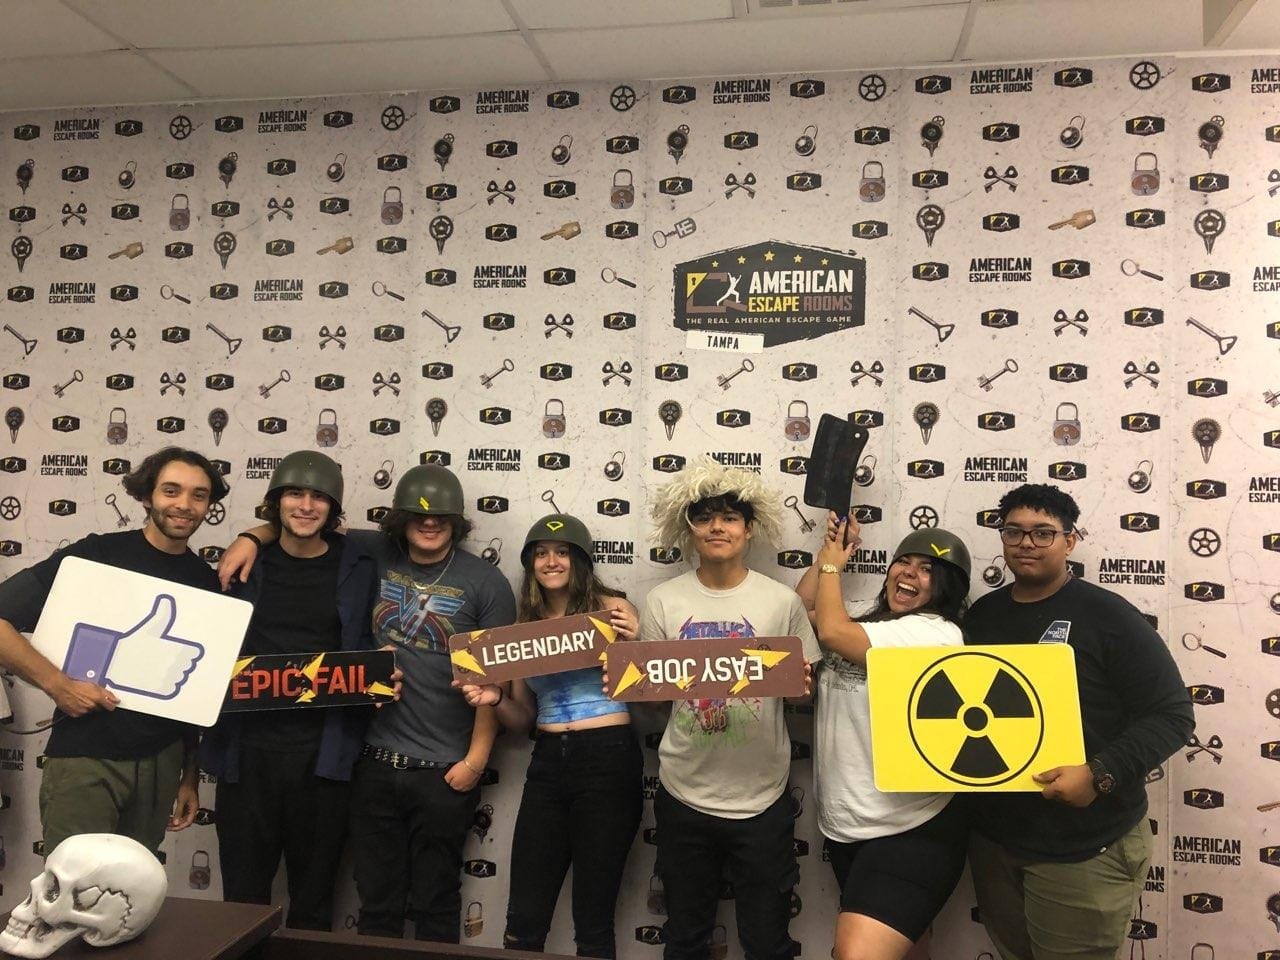 We did it played the Cold War Crisis - Tampa and finished the game with 4 minutes 4 seconds left. Congratulations! Well done!